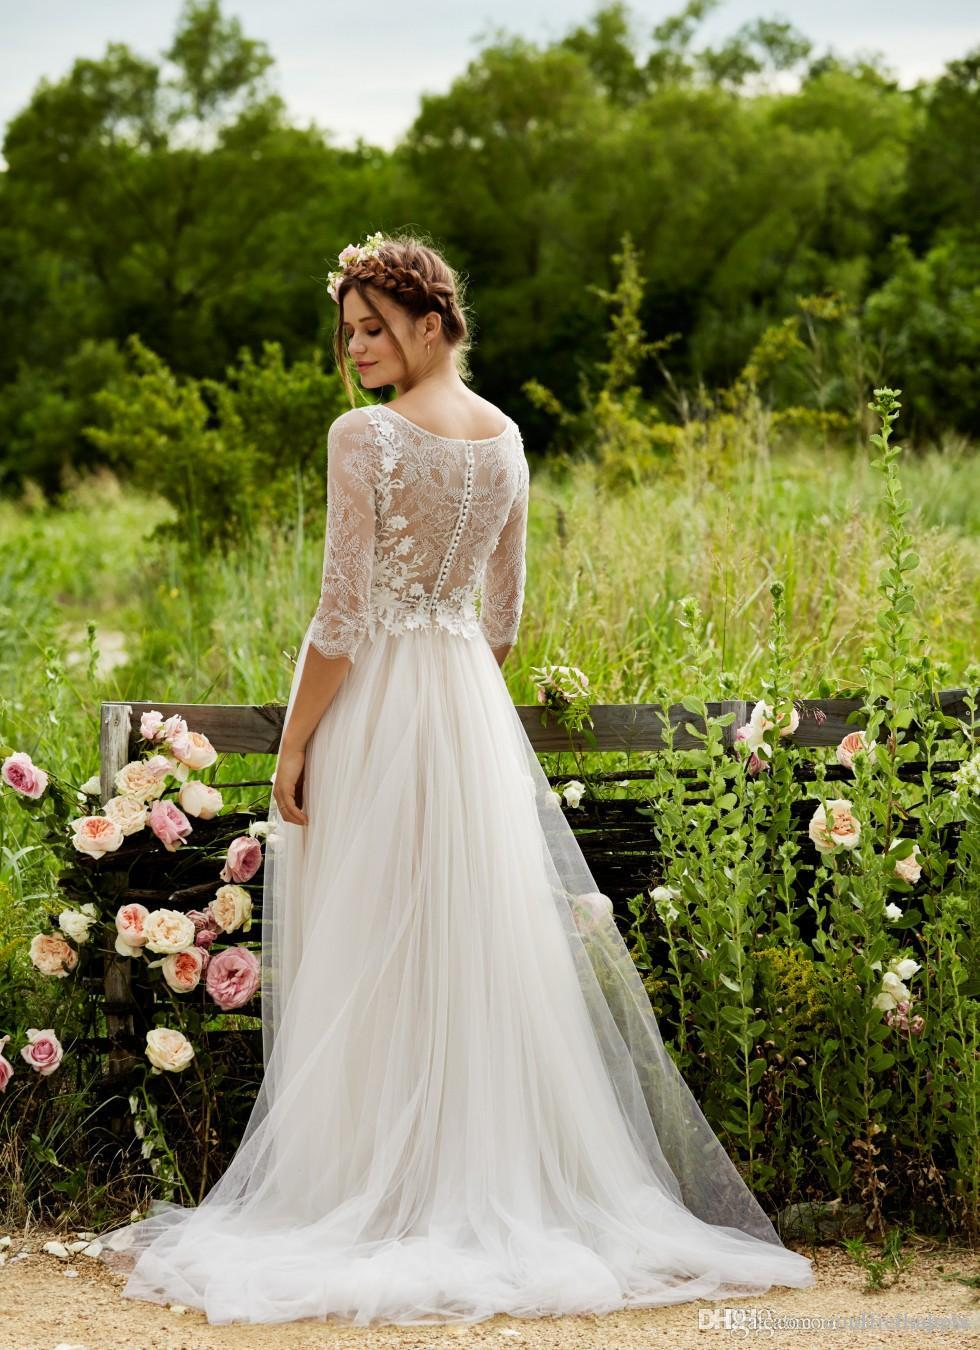 BHLDN 2020 Spring Full Lace Wedding Dresses with Half Sleeves A Line Scoop Tulle Floor Length Floral Appliqued Lace beach Bridal Gown BA1642